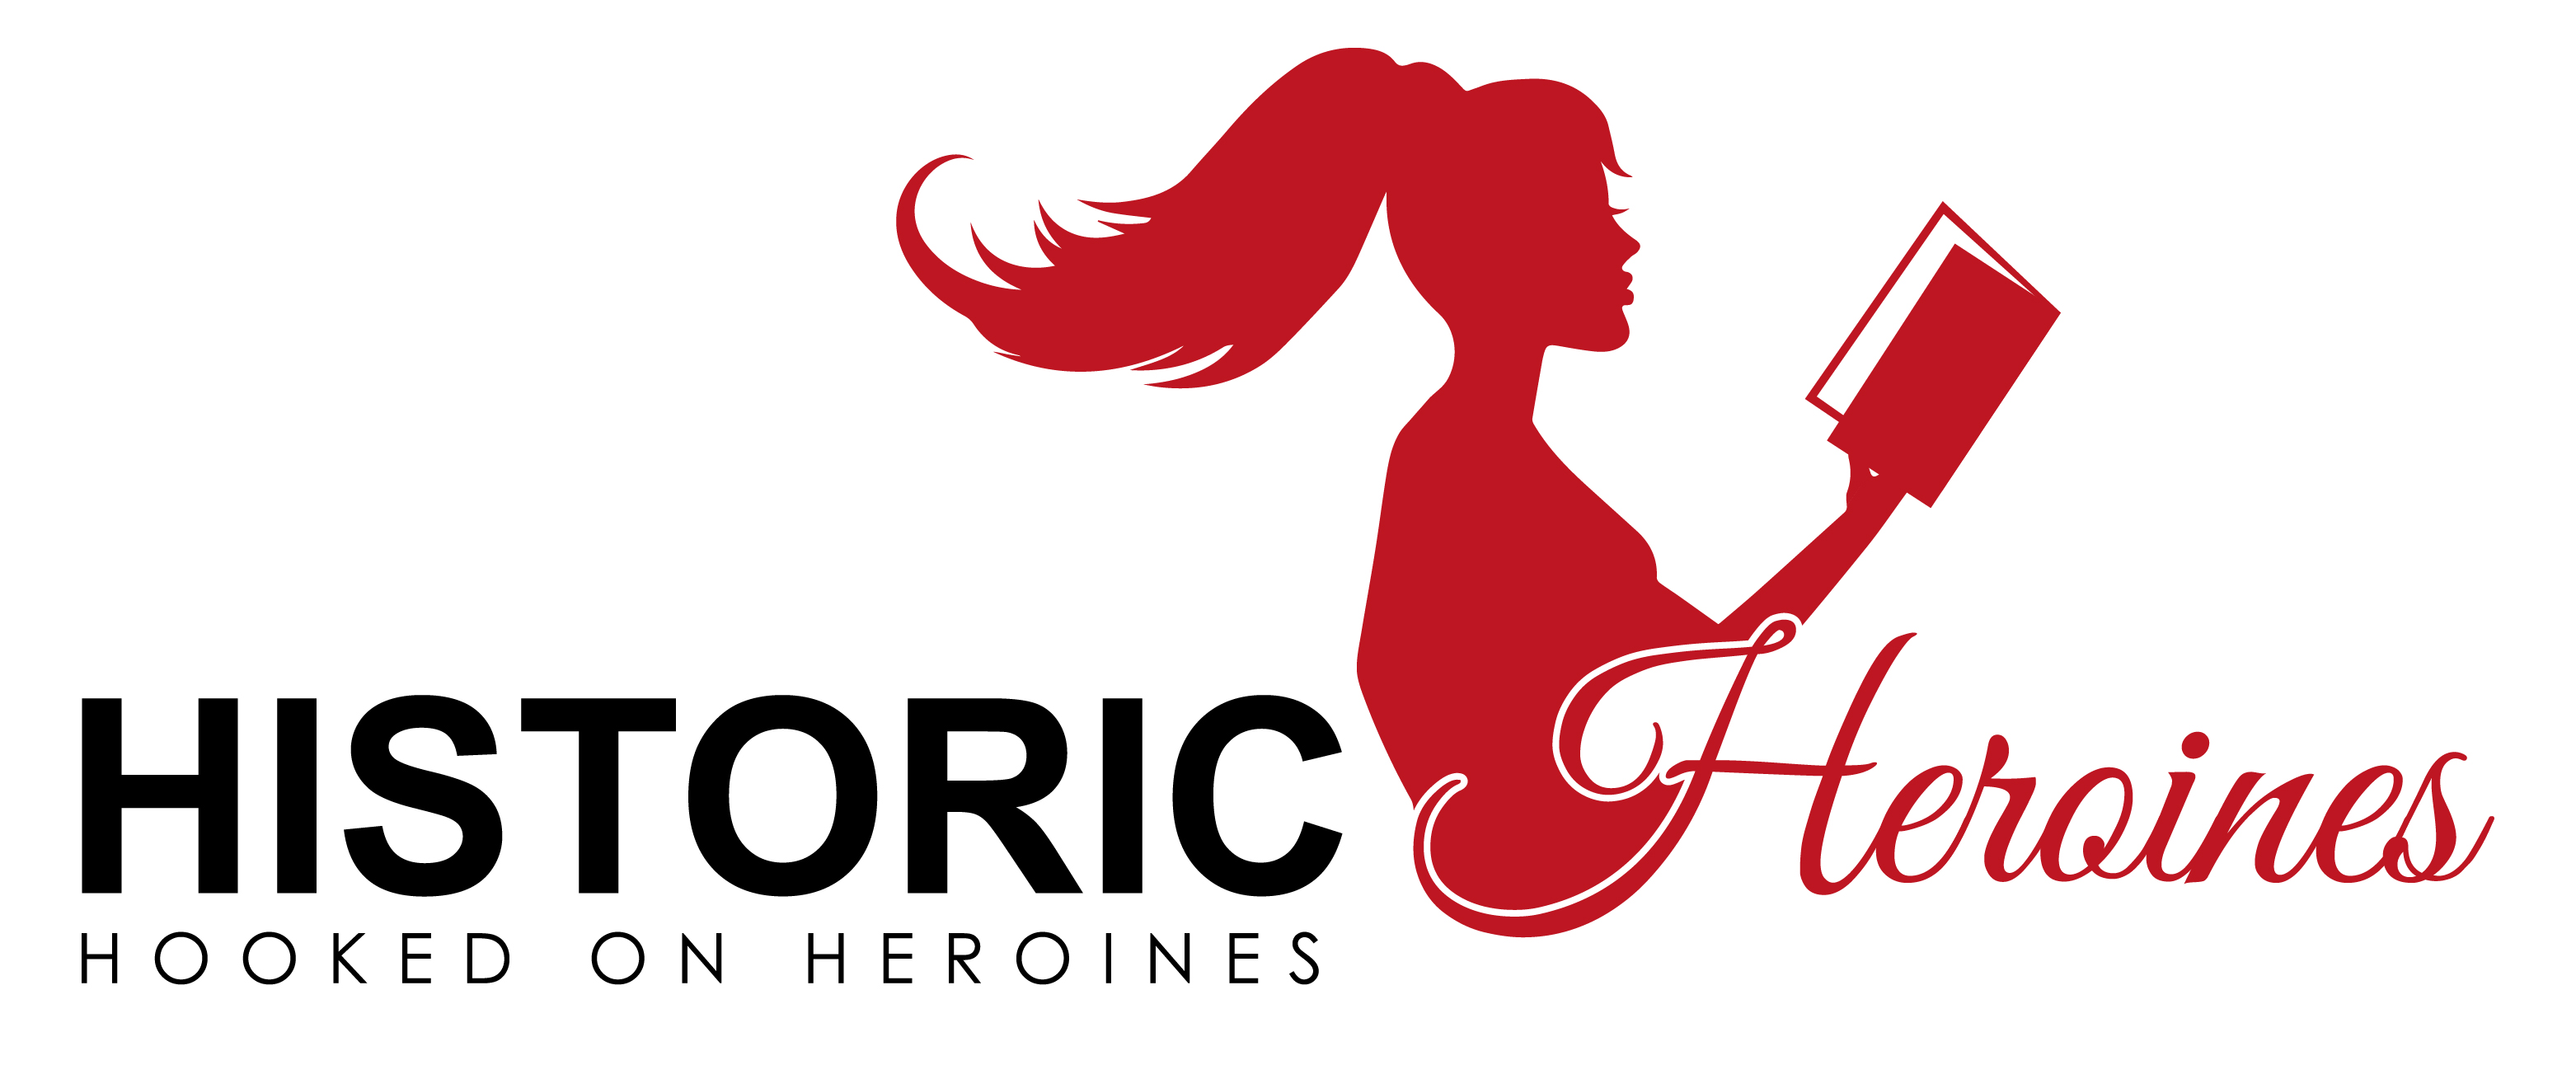 Historic Heroines- JPEG-01